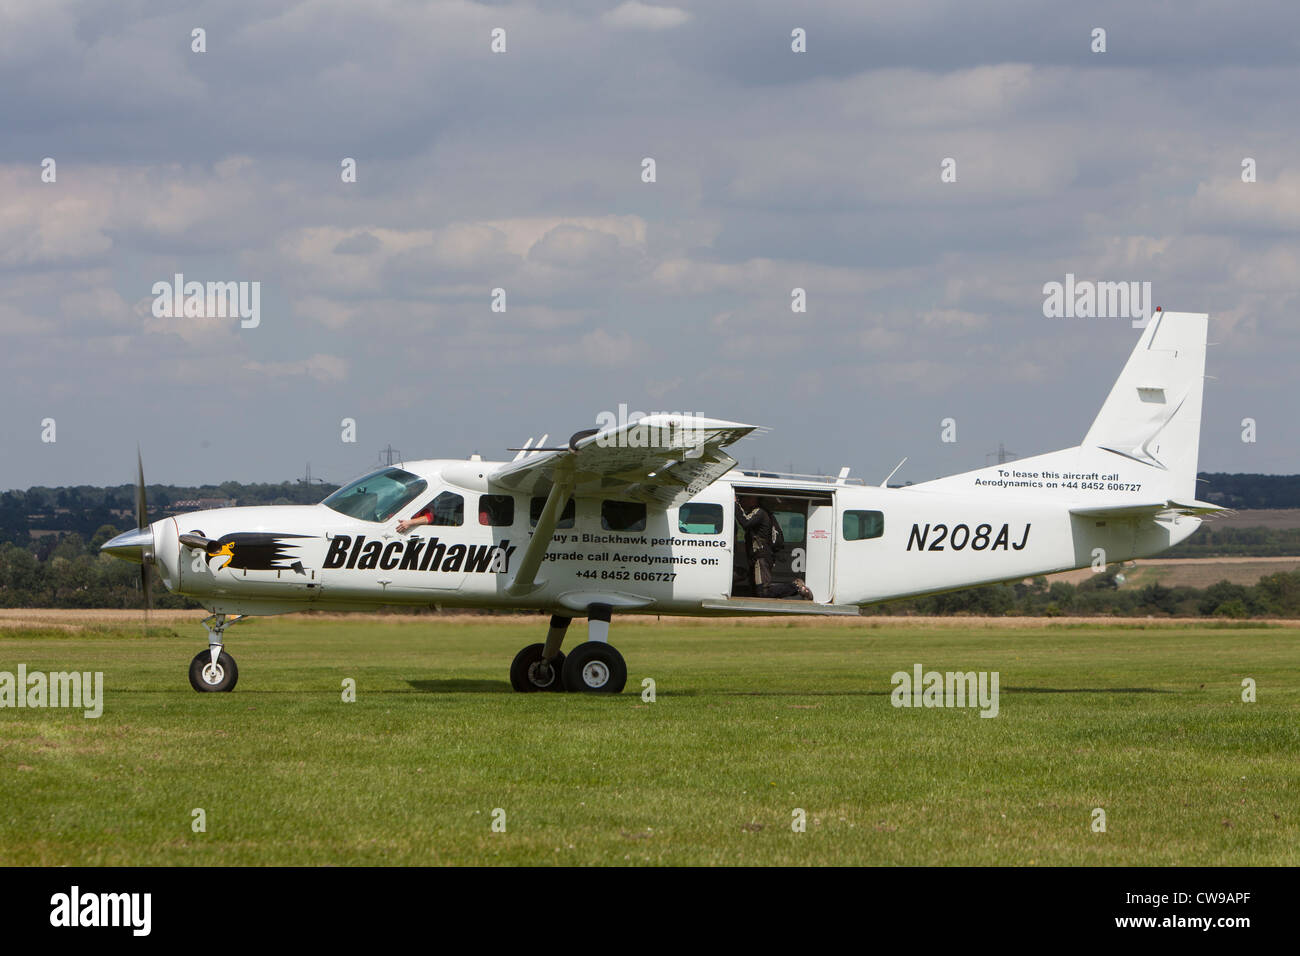 Cessna 208 Grand Caravan, reg N208AJ, at Sibson airfield